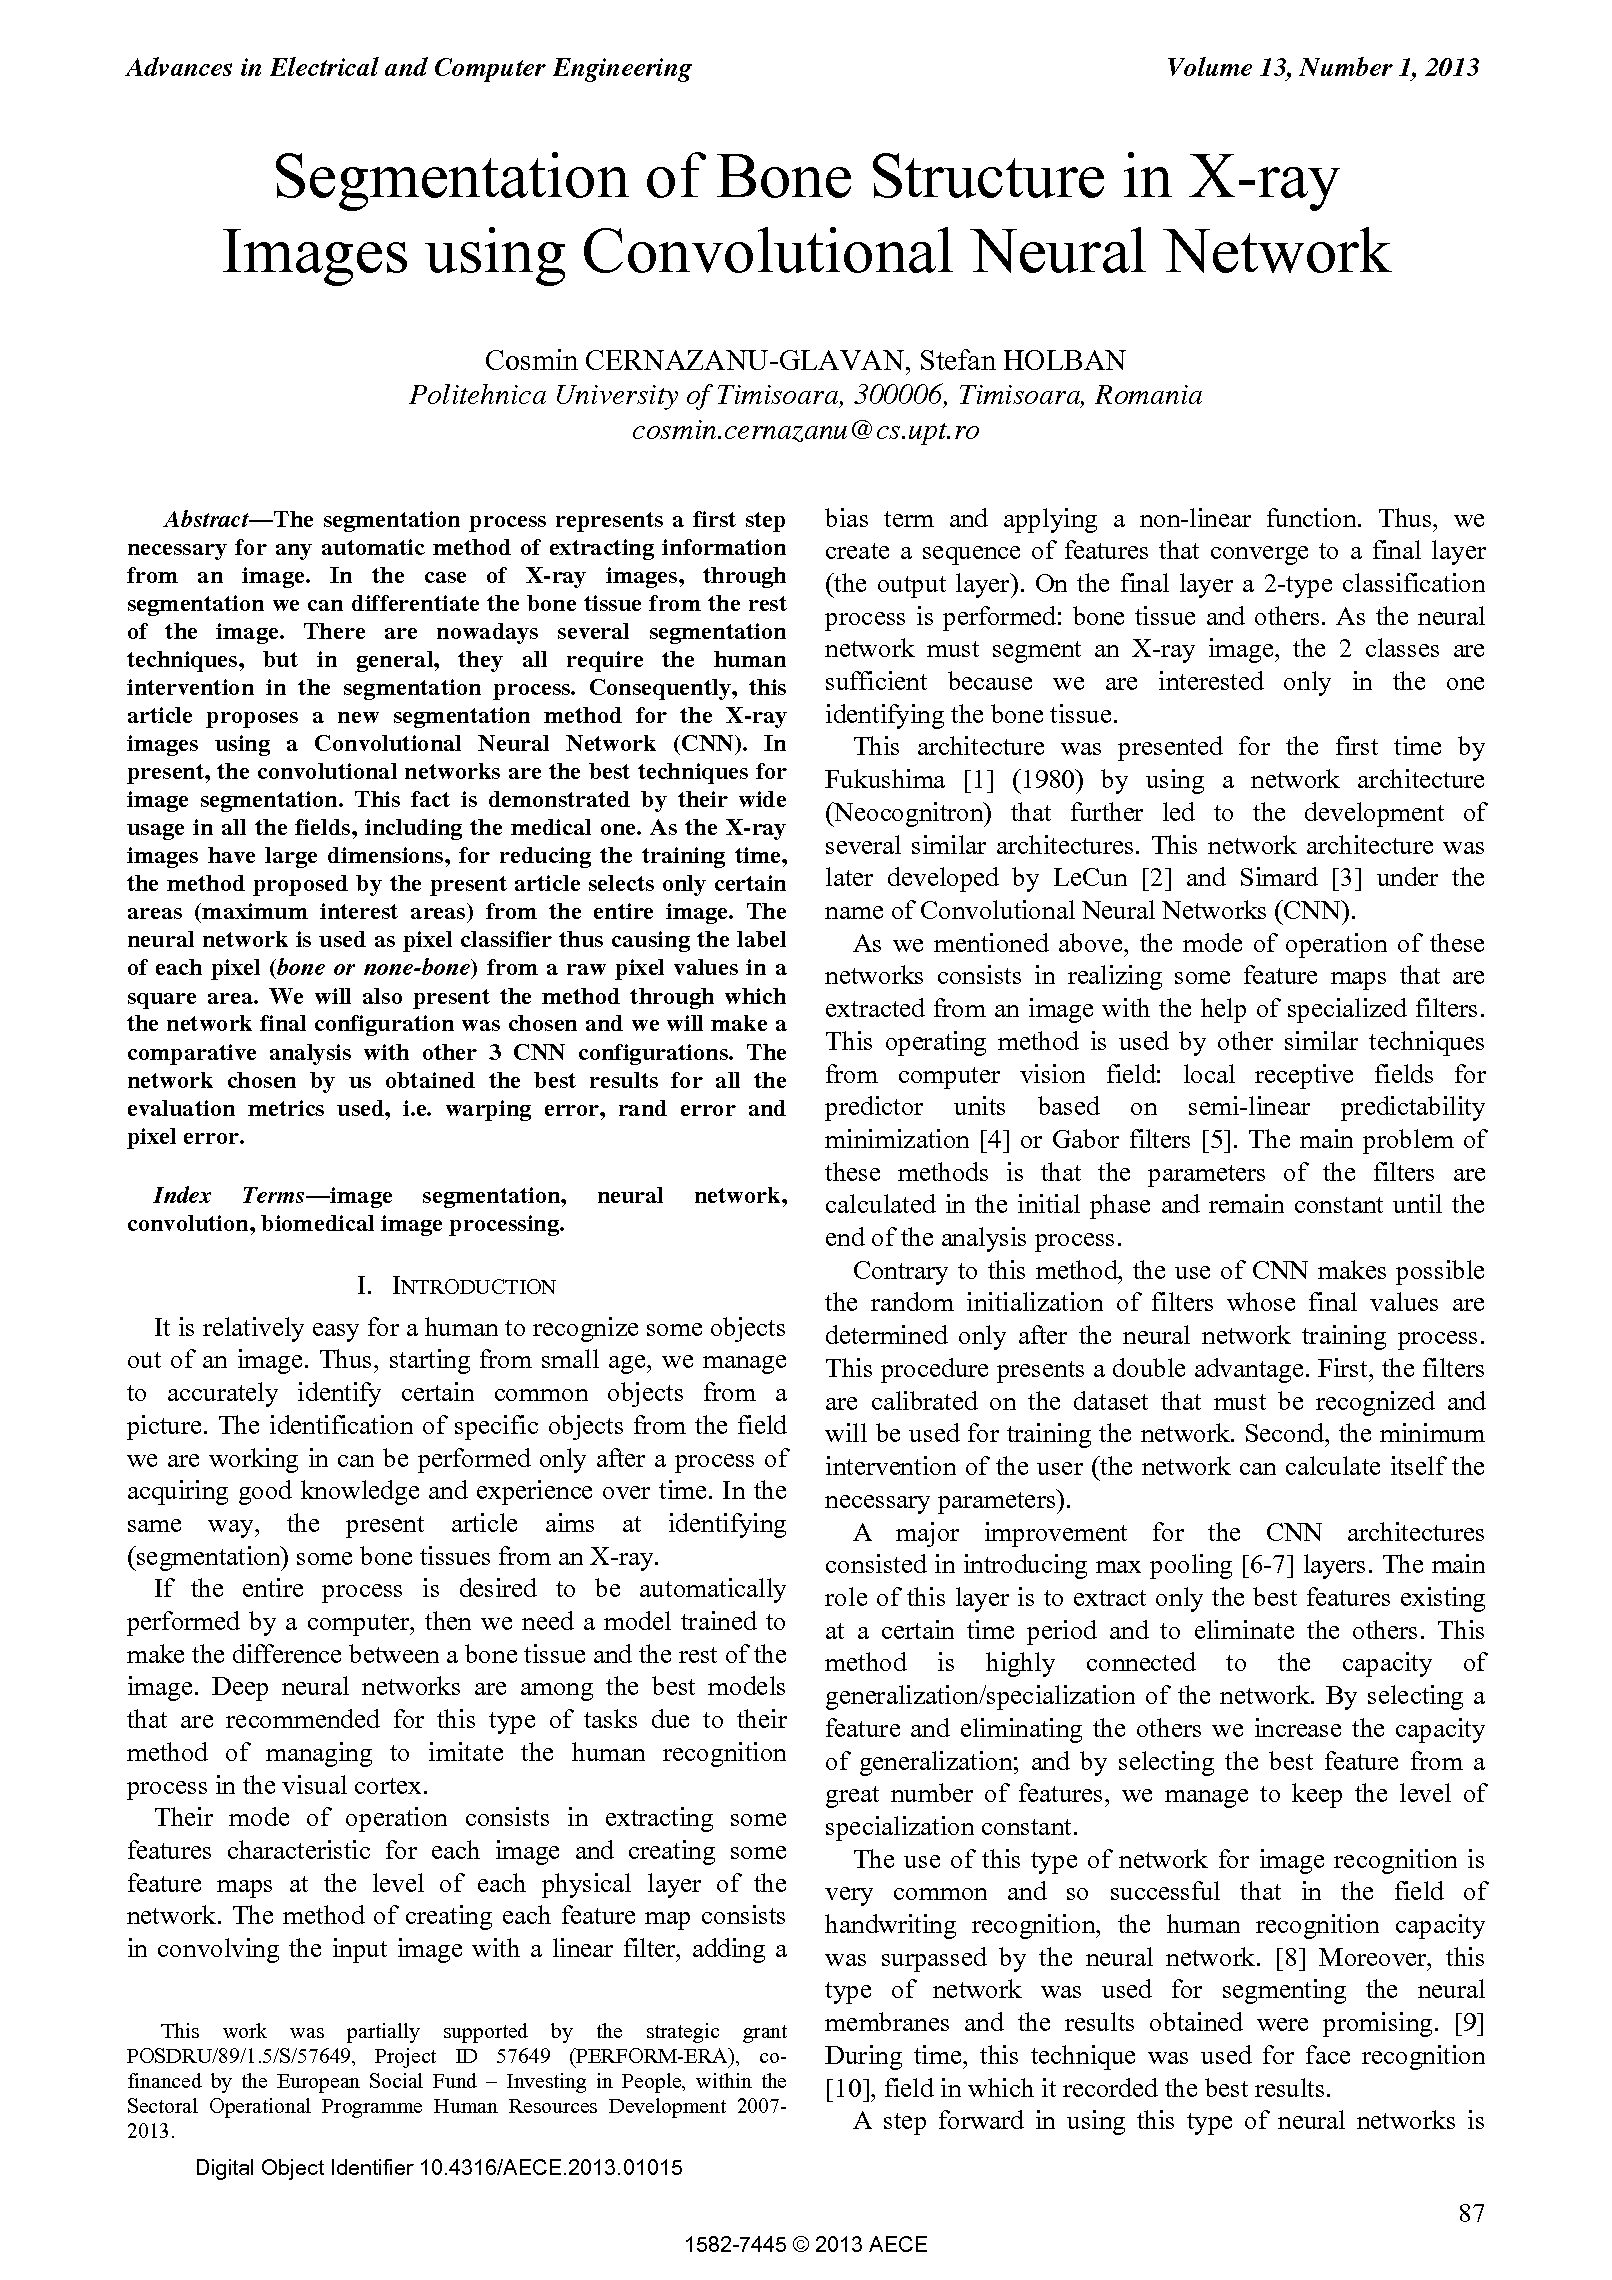 PDF Quickview for paper with DOI:10.4316/AECE.2013.01015